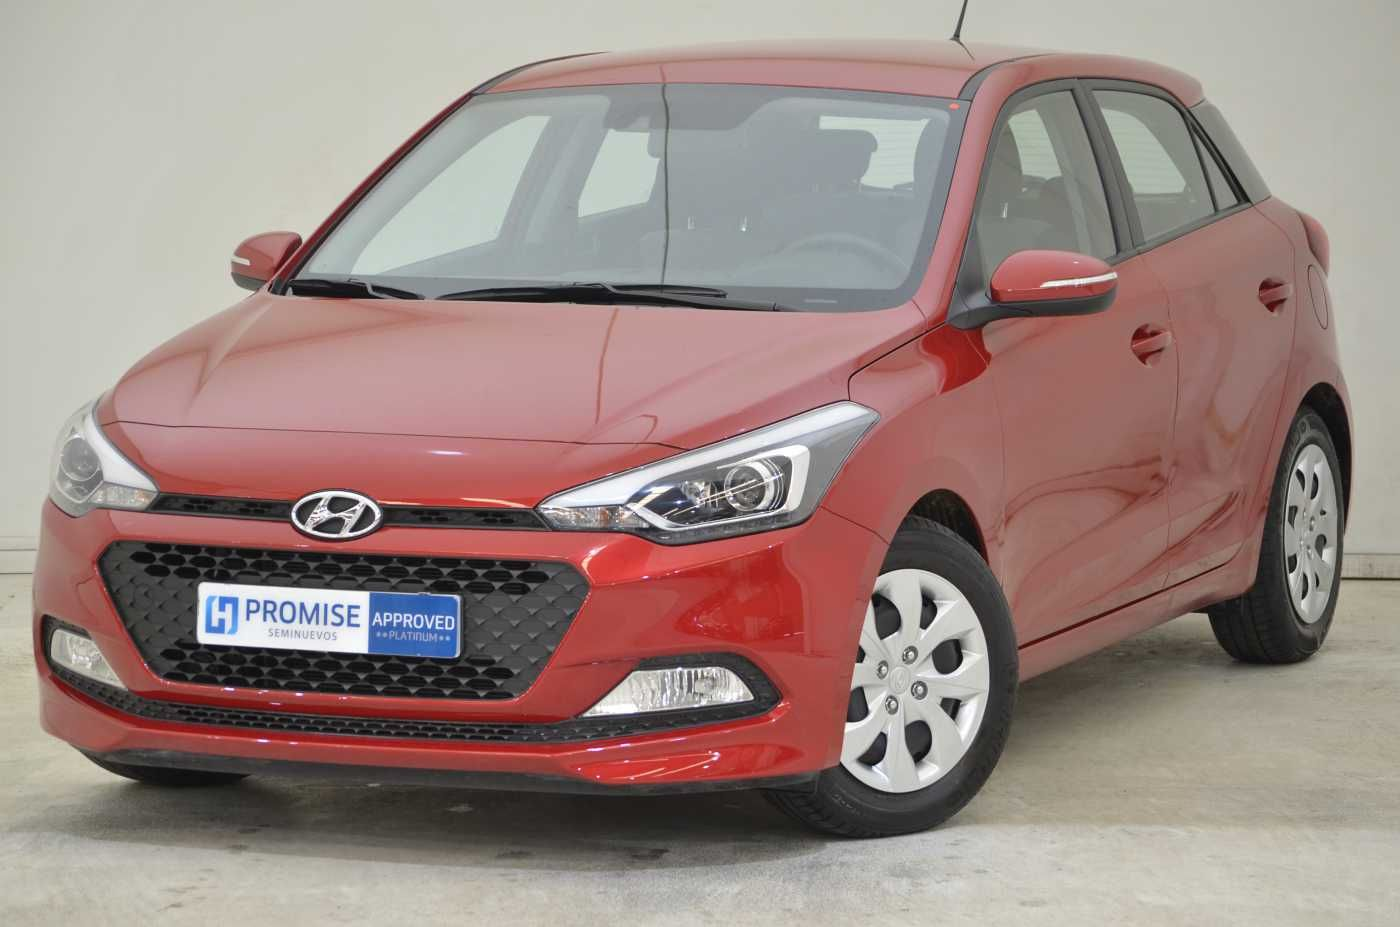 OFERTA ESPECTACULAR Hyundai i20 1.2 Klass Passion Red, 28.800 km, gasolina per només 9.500€*